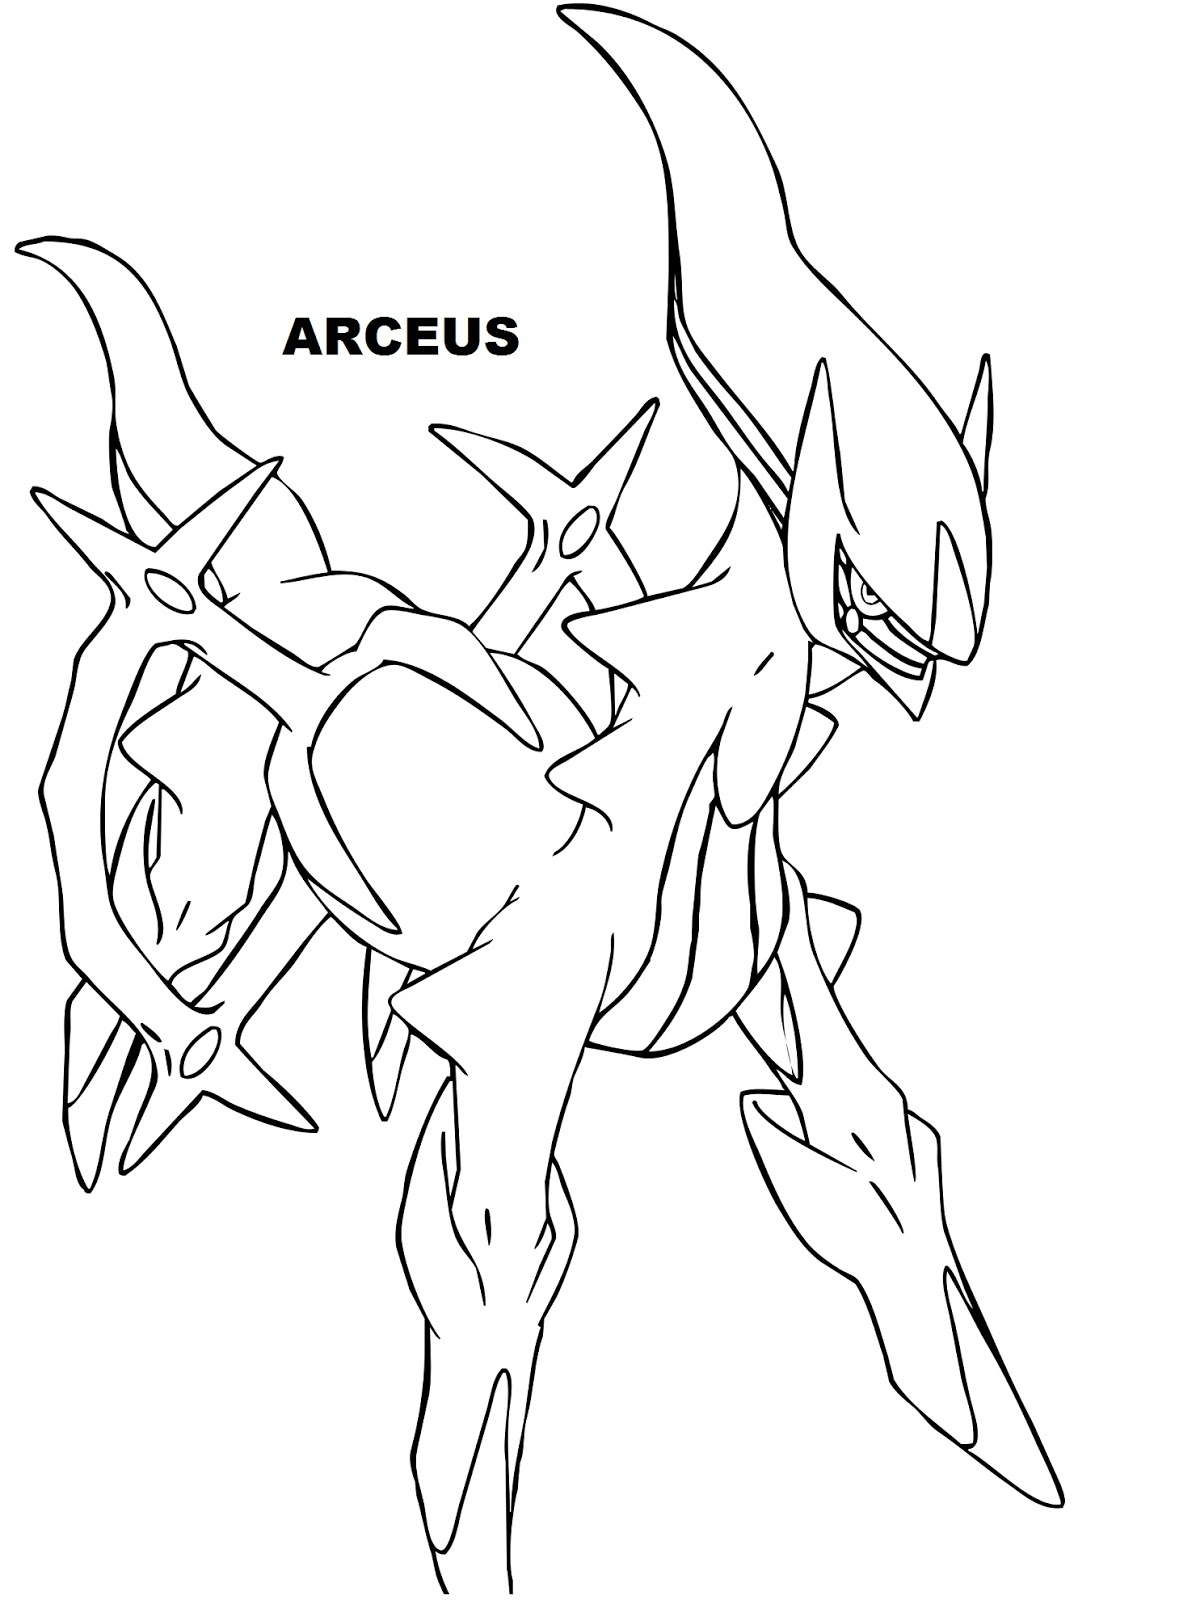 Free Legendary Pokemon Coloring Pages For Kids Legendary Coloring Page